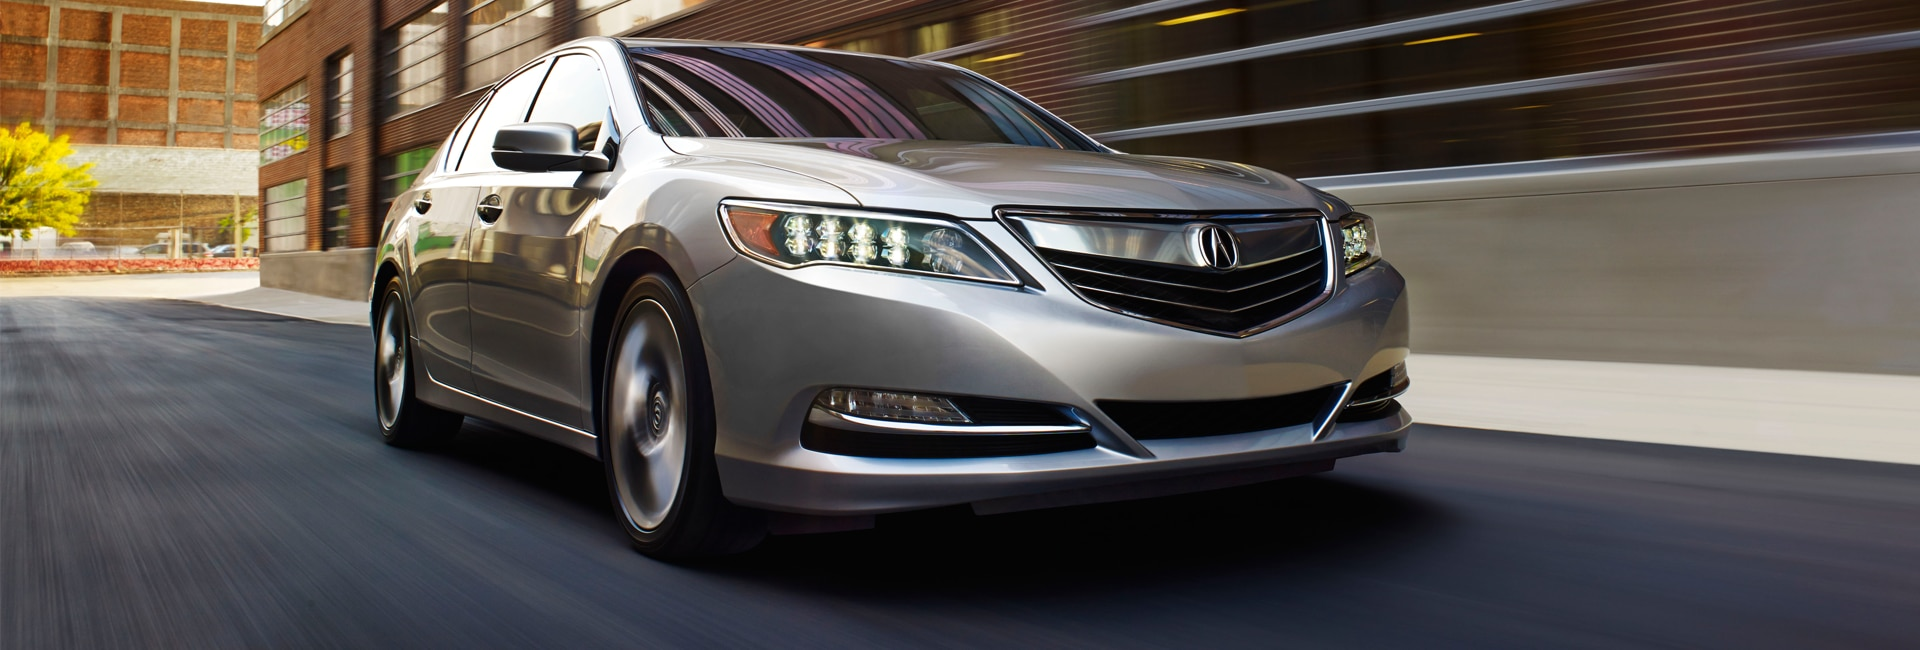 2017 Acura RLXExterior Features